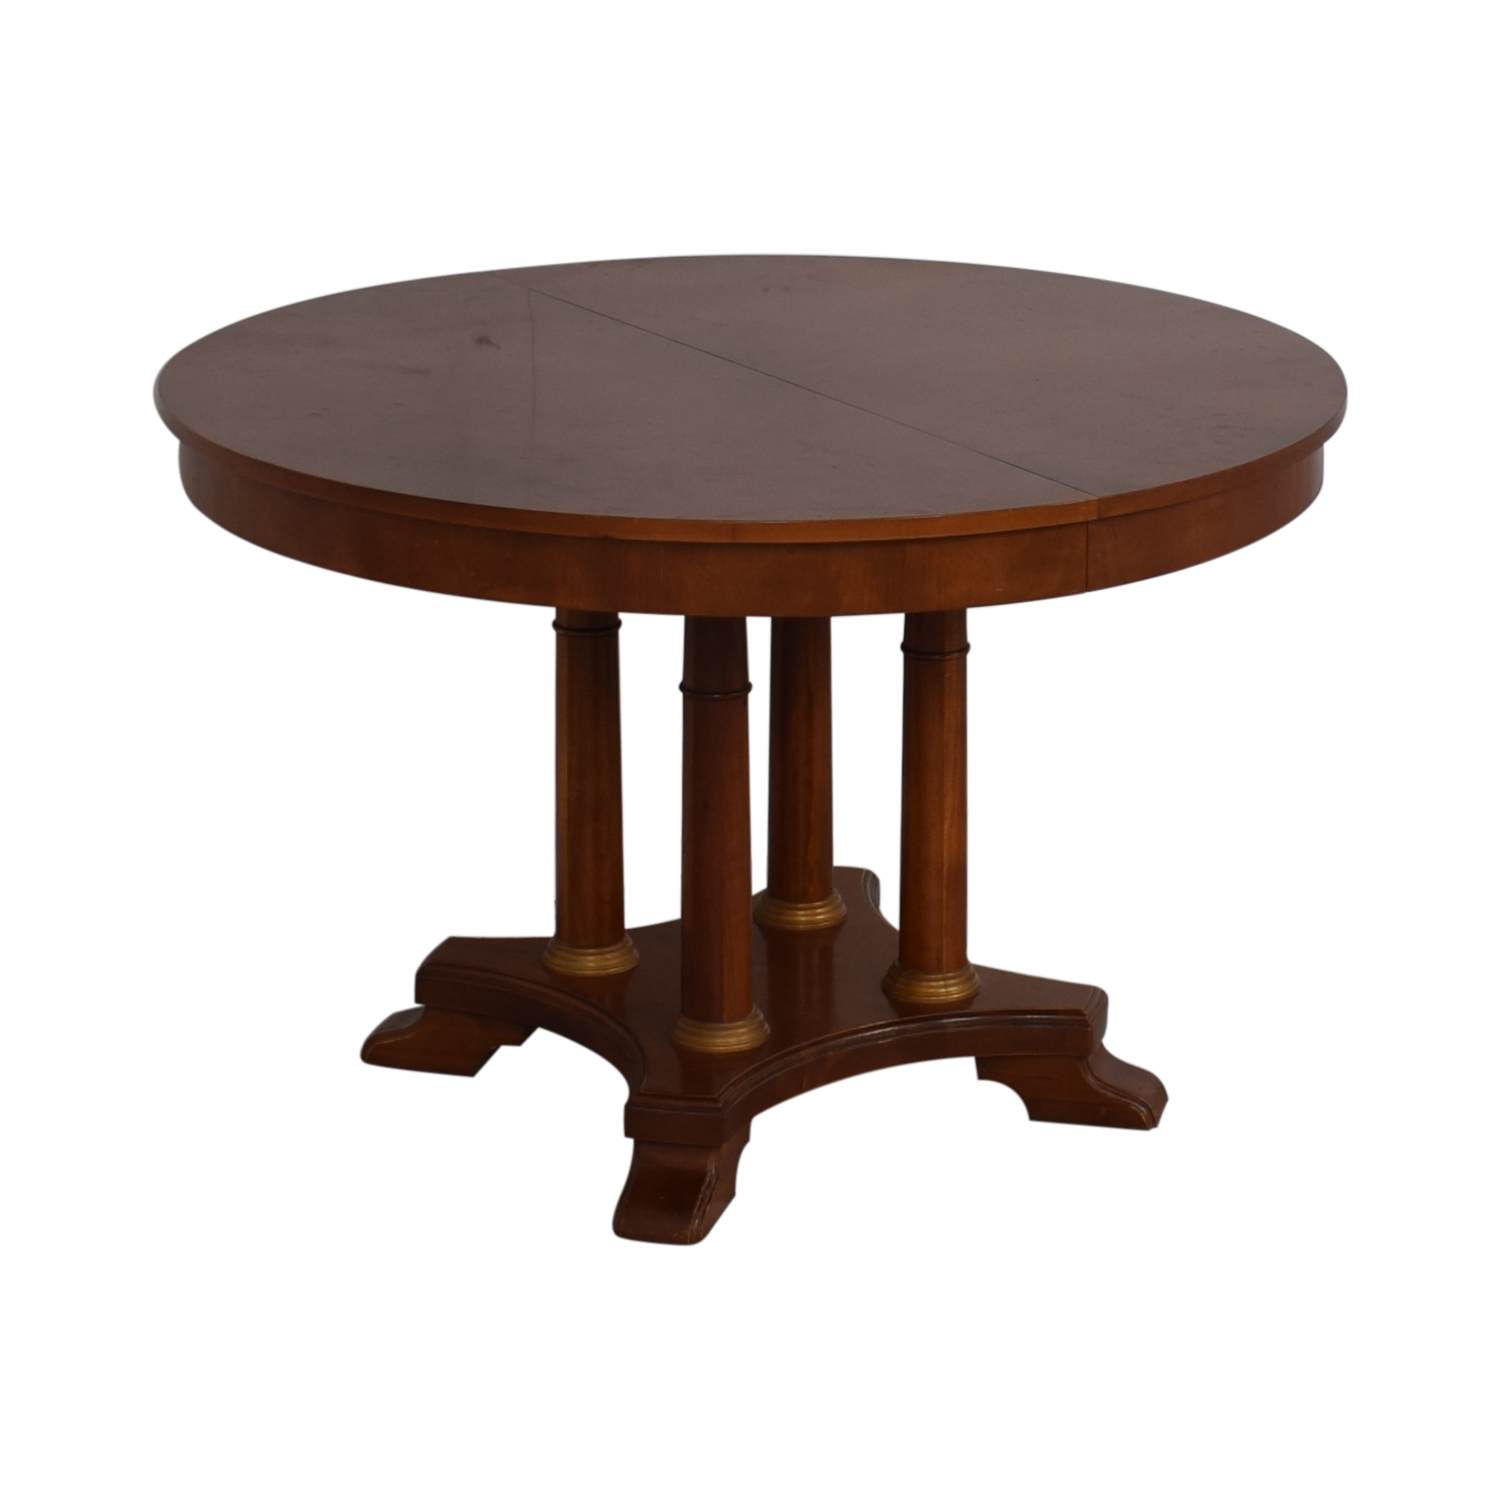 buy  Round Pedestal Dining Table online